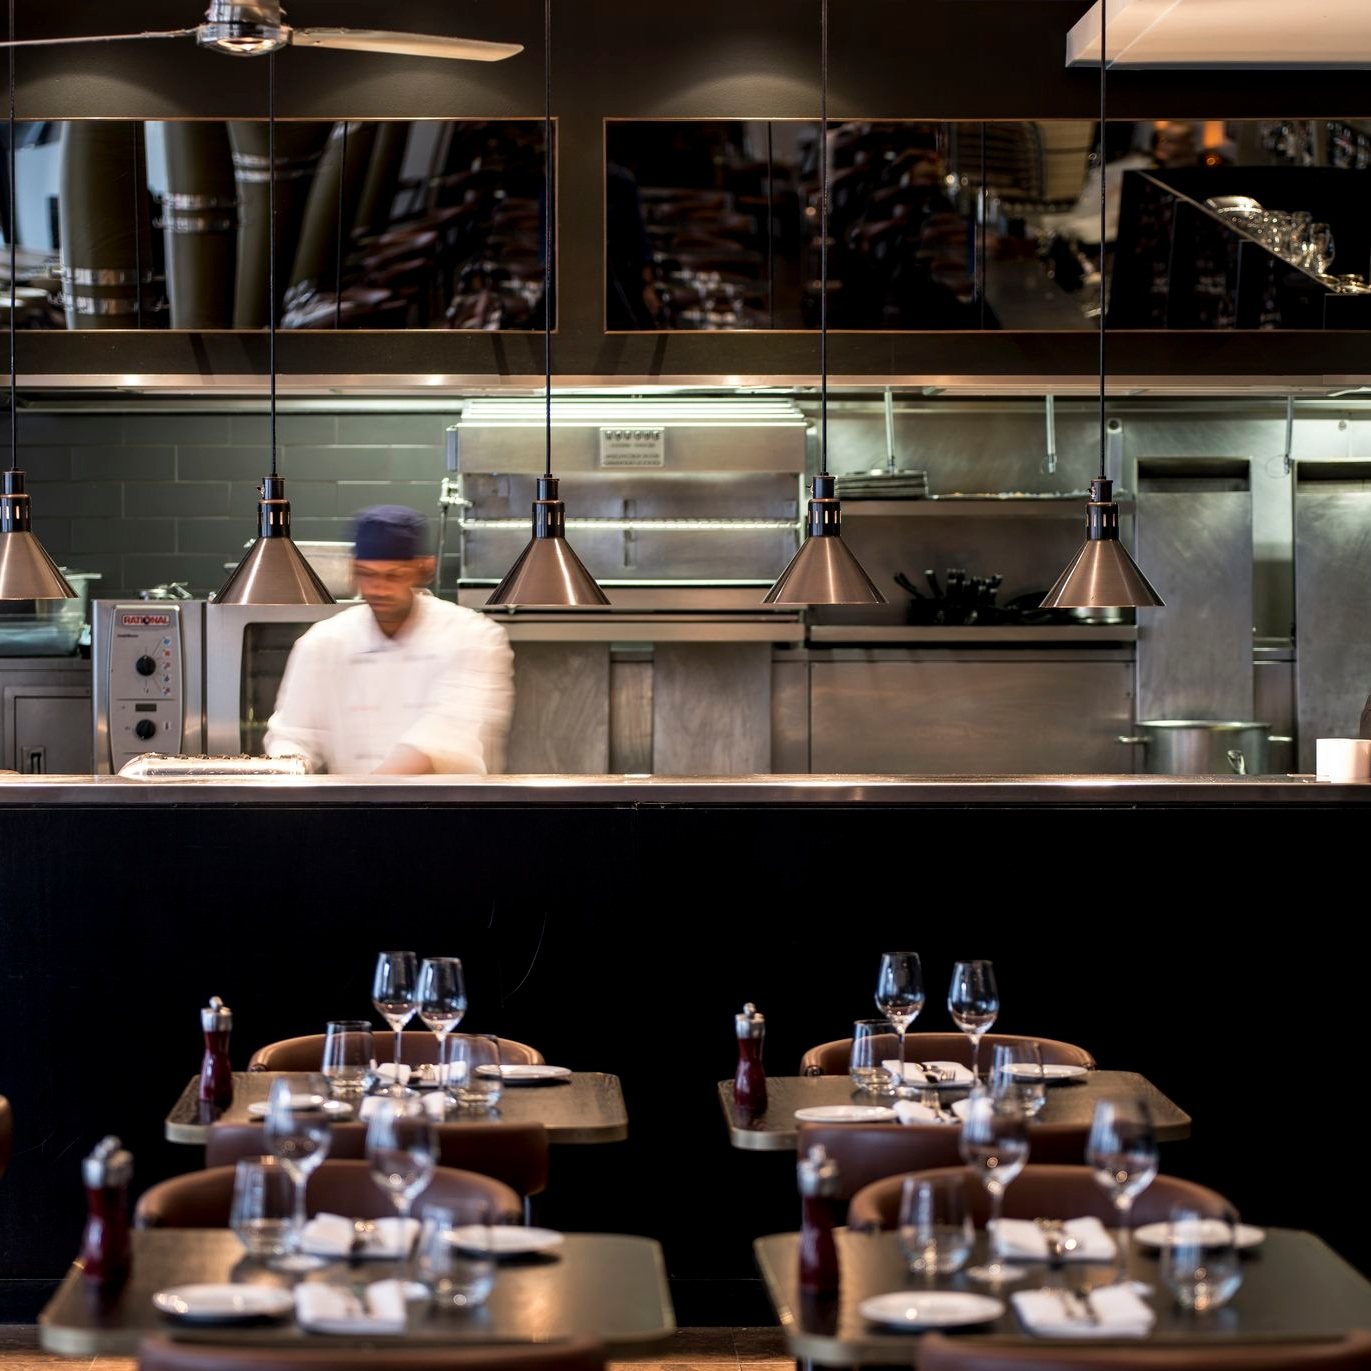 Experience the live view of our open kitchen